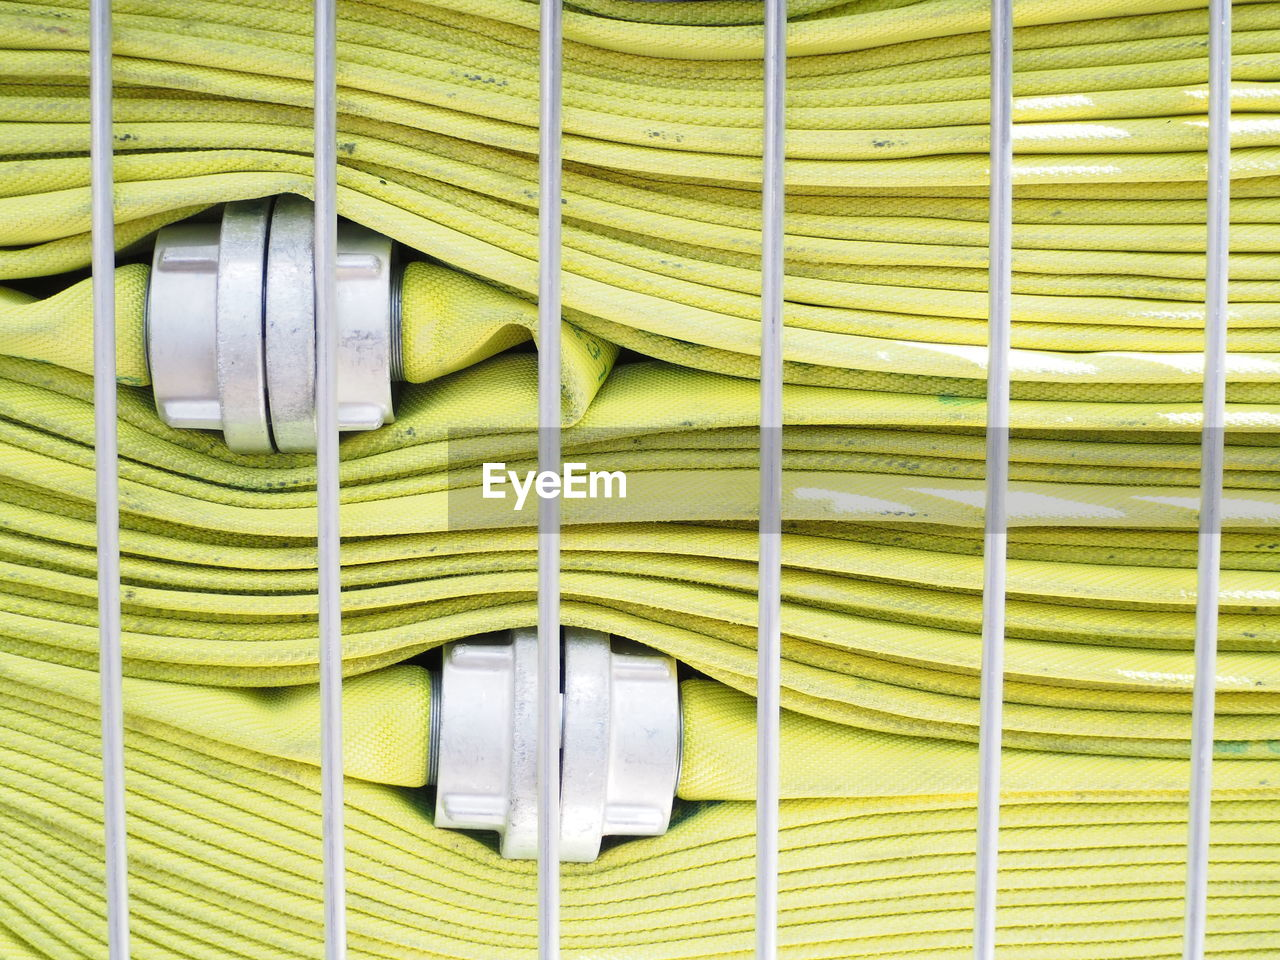 no people, wall - building feature, equipment, backgrounds, pattern, full frame, green color, close-up, hanging, metal, cleaning equipment, broom, day, electricity, indoors, built structure, technology, connection, protection, gardening, home improvement